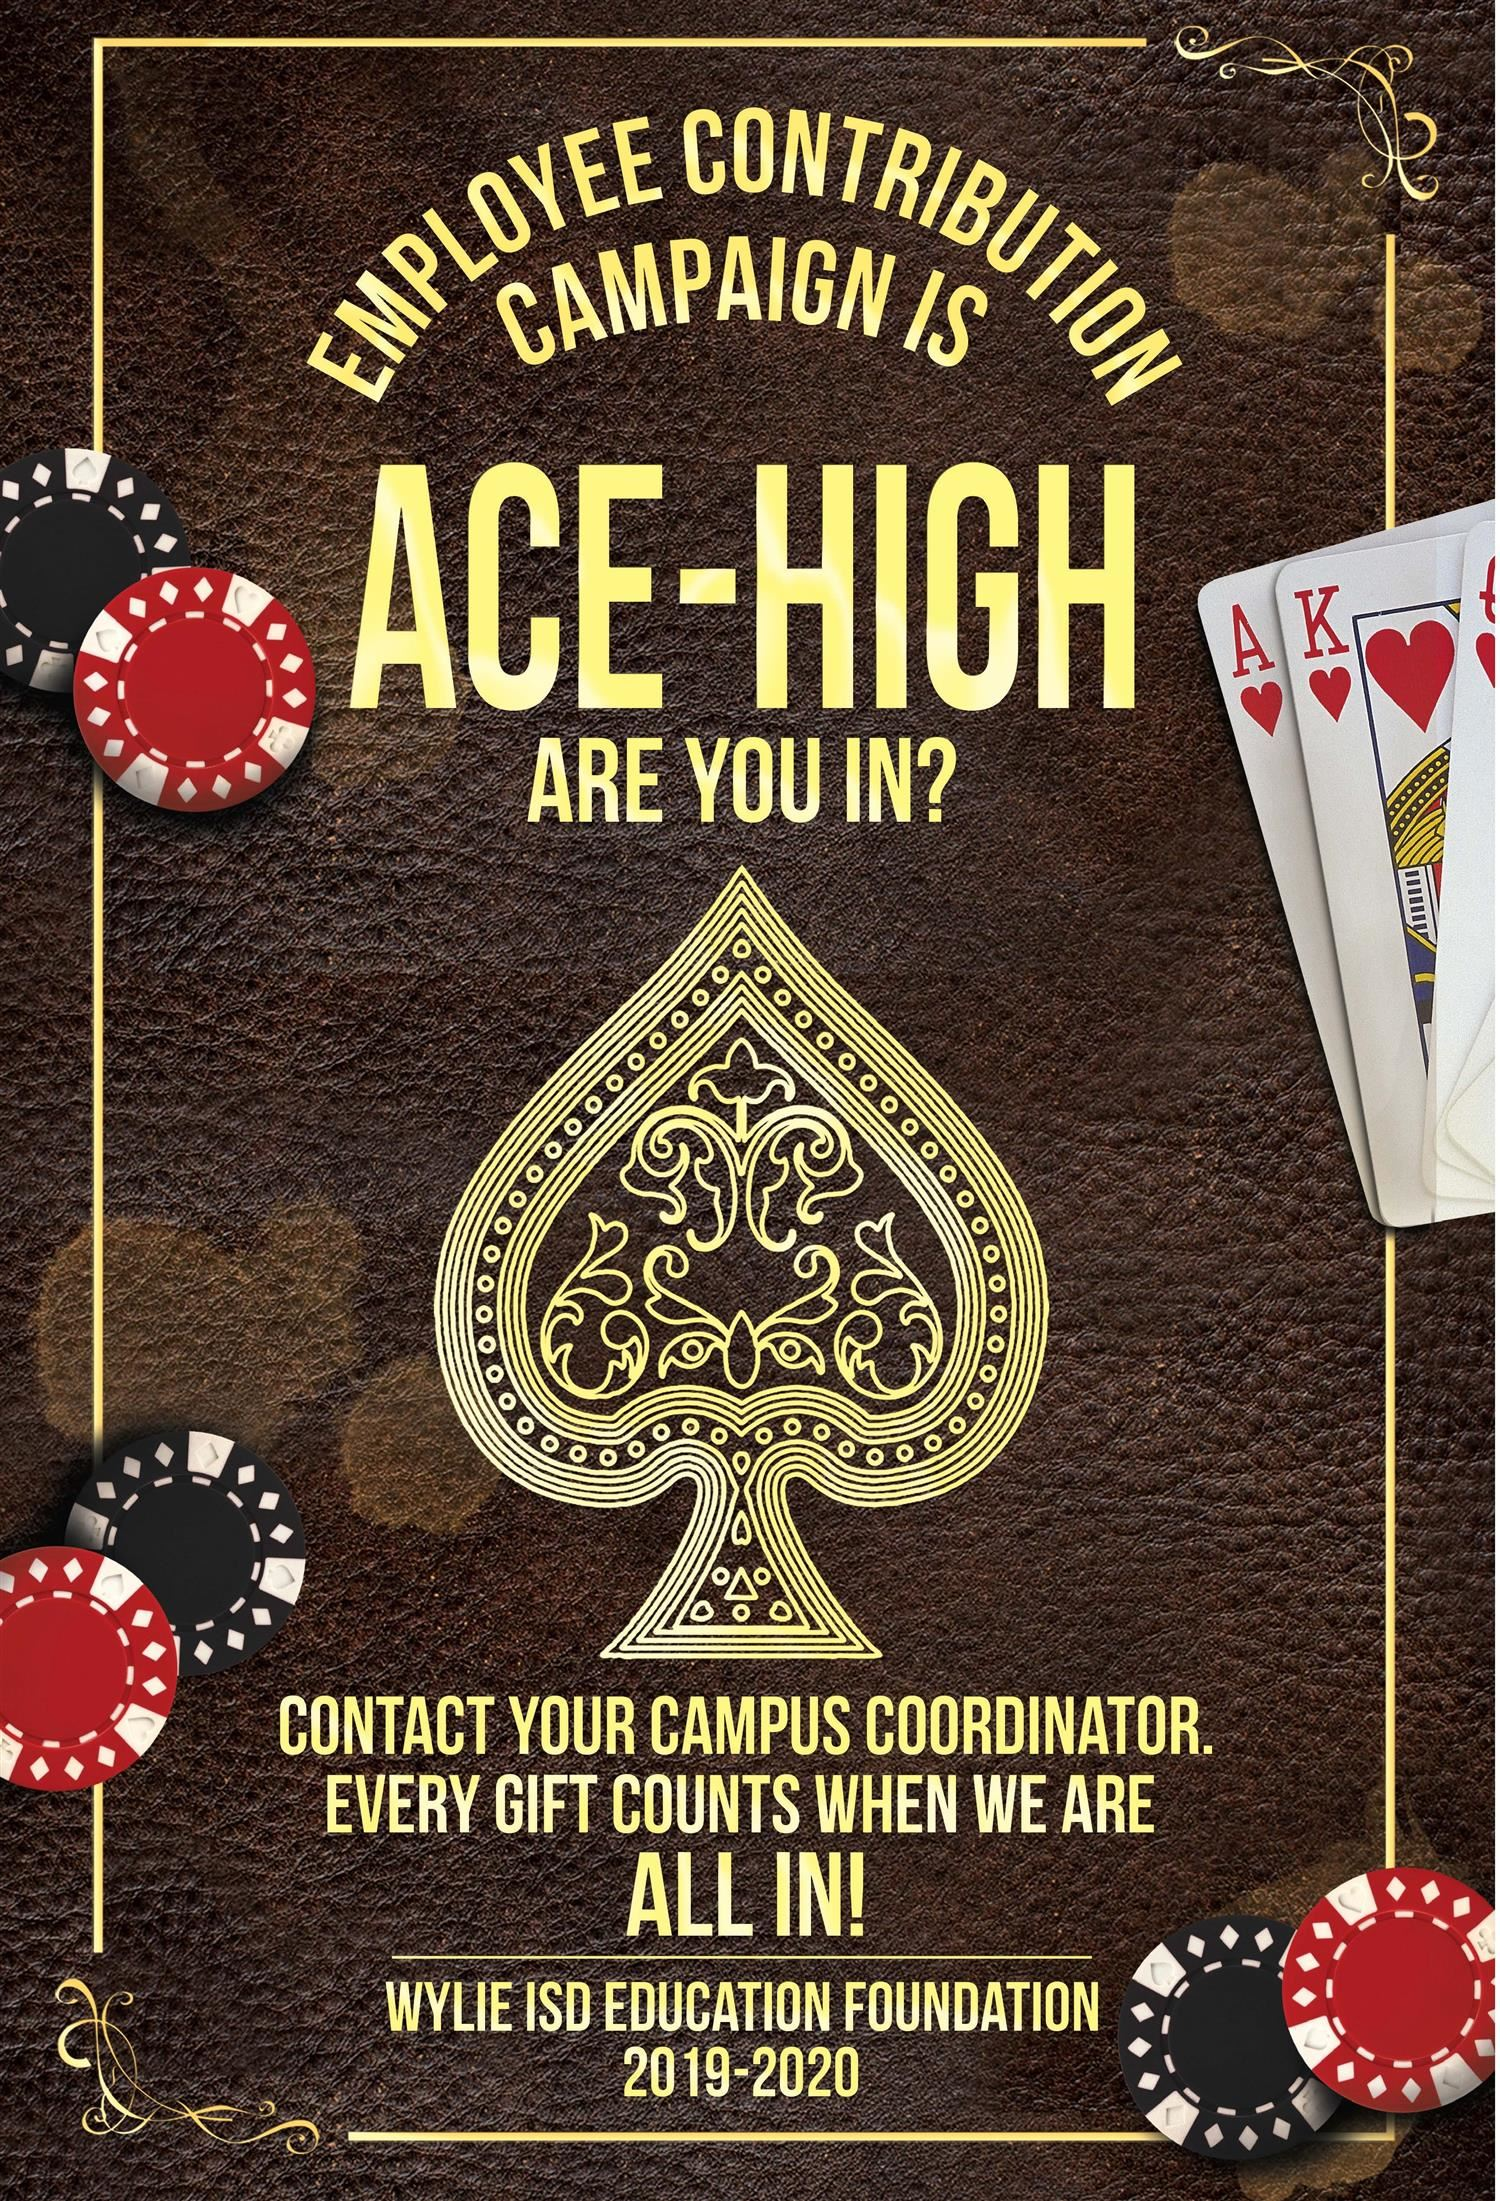 Ace high hand of cards